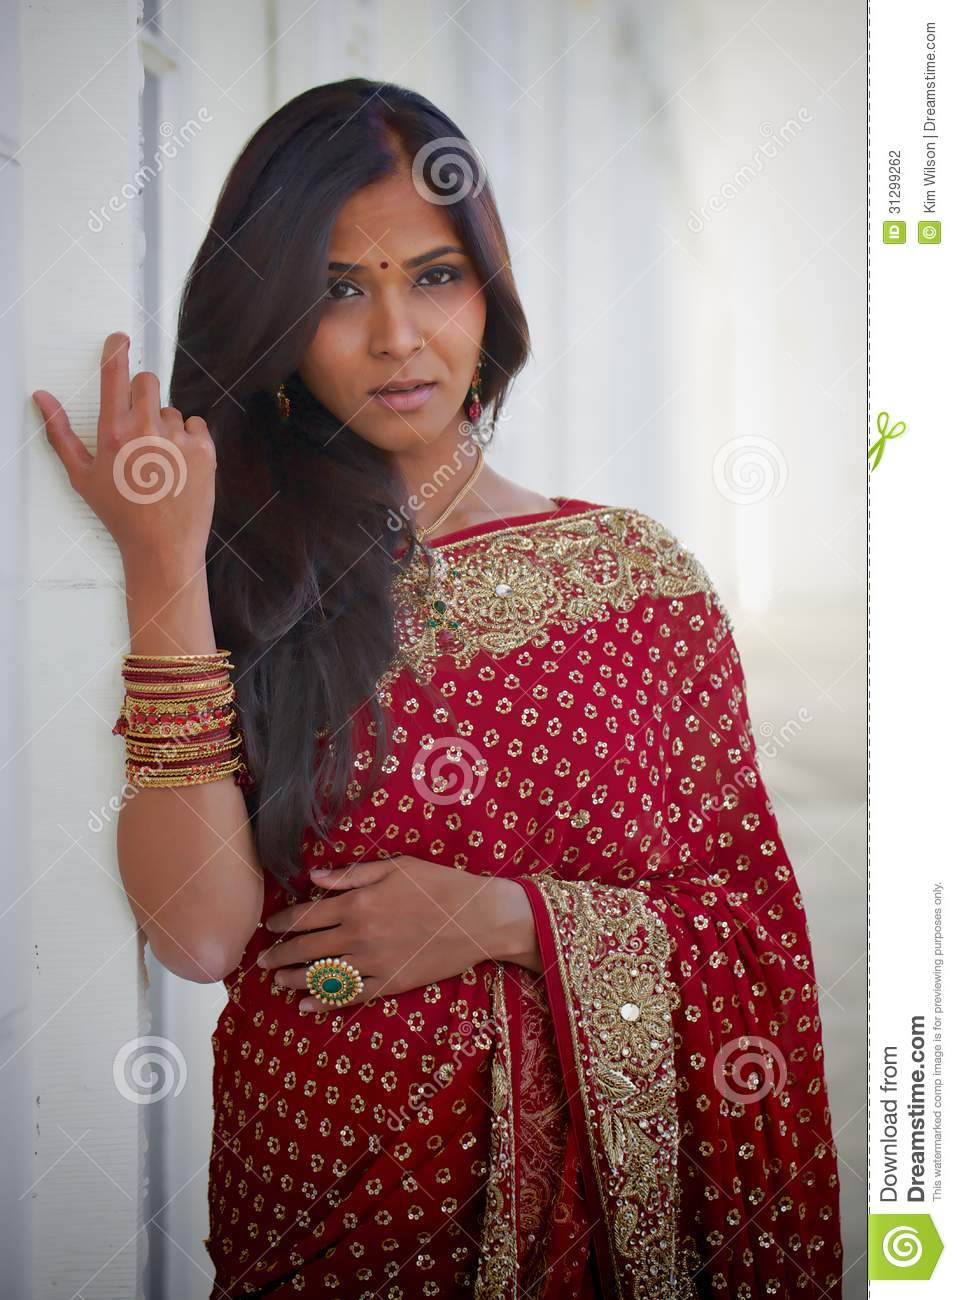 Sultry Indian Woman stock photo. Image of ethnic, yellow